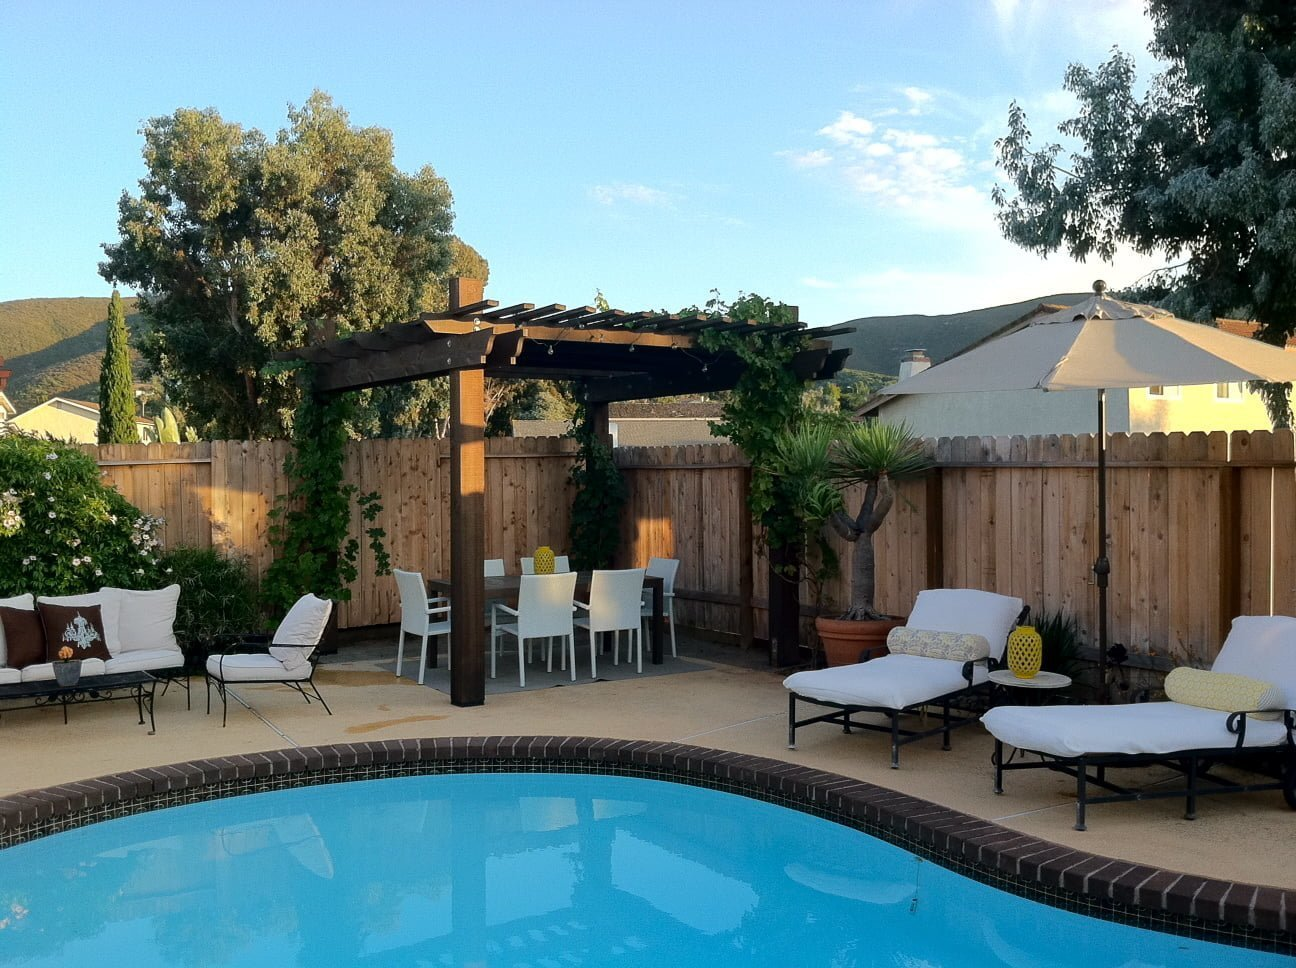 The Real Budget-friendly Backyard Makeover with Tips and ... on Patio Makeovers On A Budget id=90308